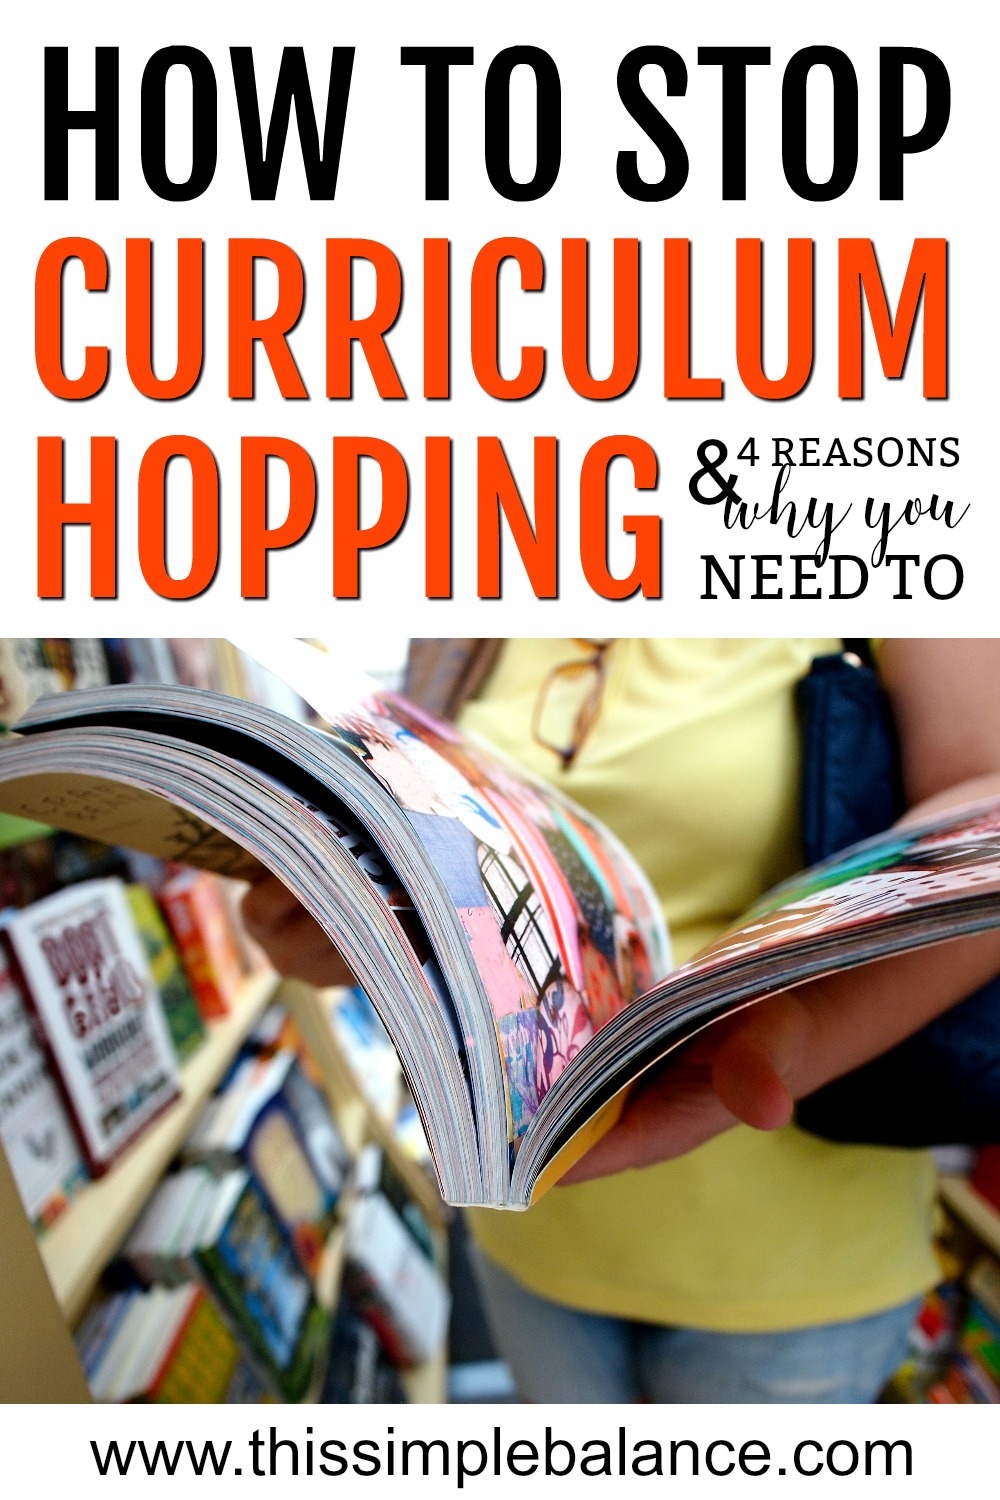 Do you frequently change homeschool curriculums, even when there isnt a great reason to change? Learn how to stop curriculum hopping and how to love the homeschool curriculum you already have.